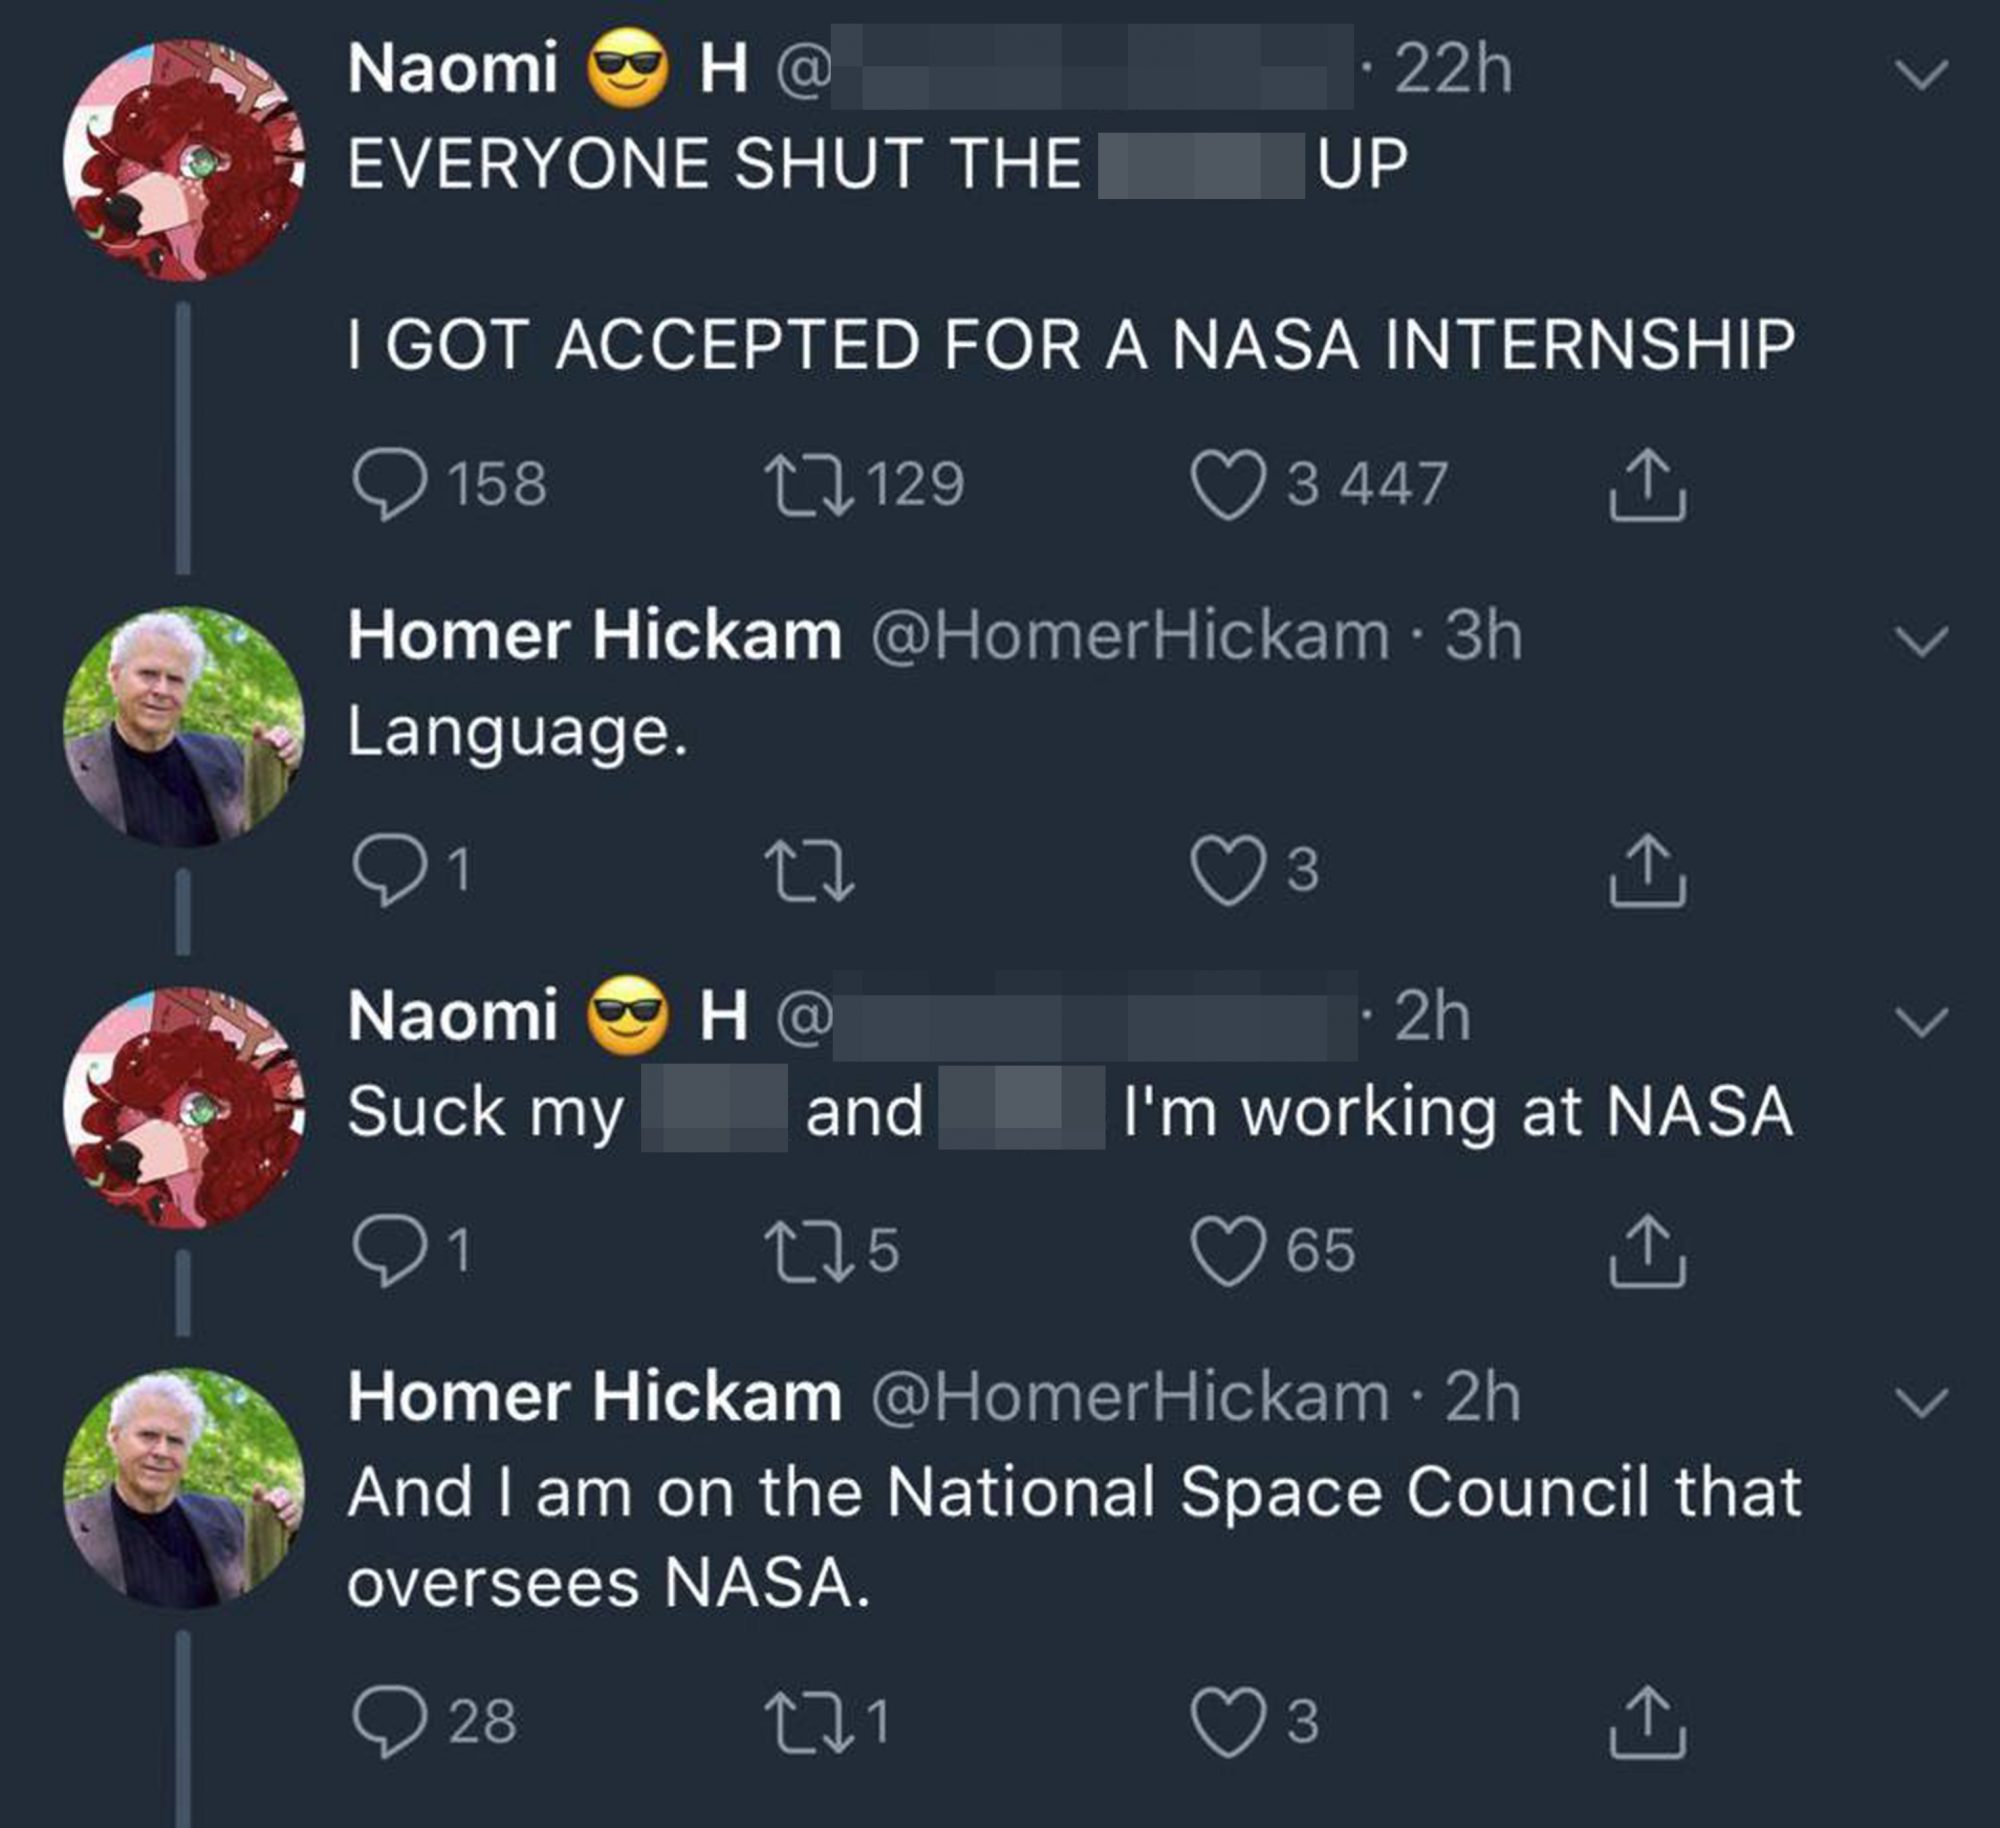 Nasa internshipCredit: Twitter